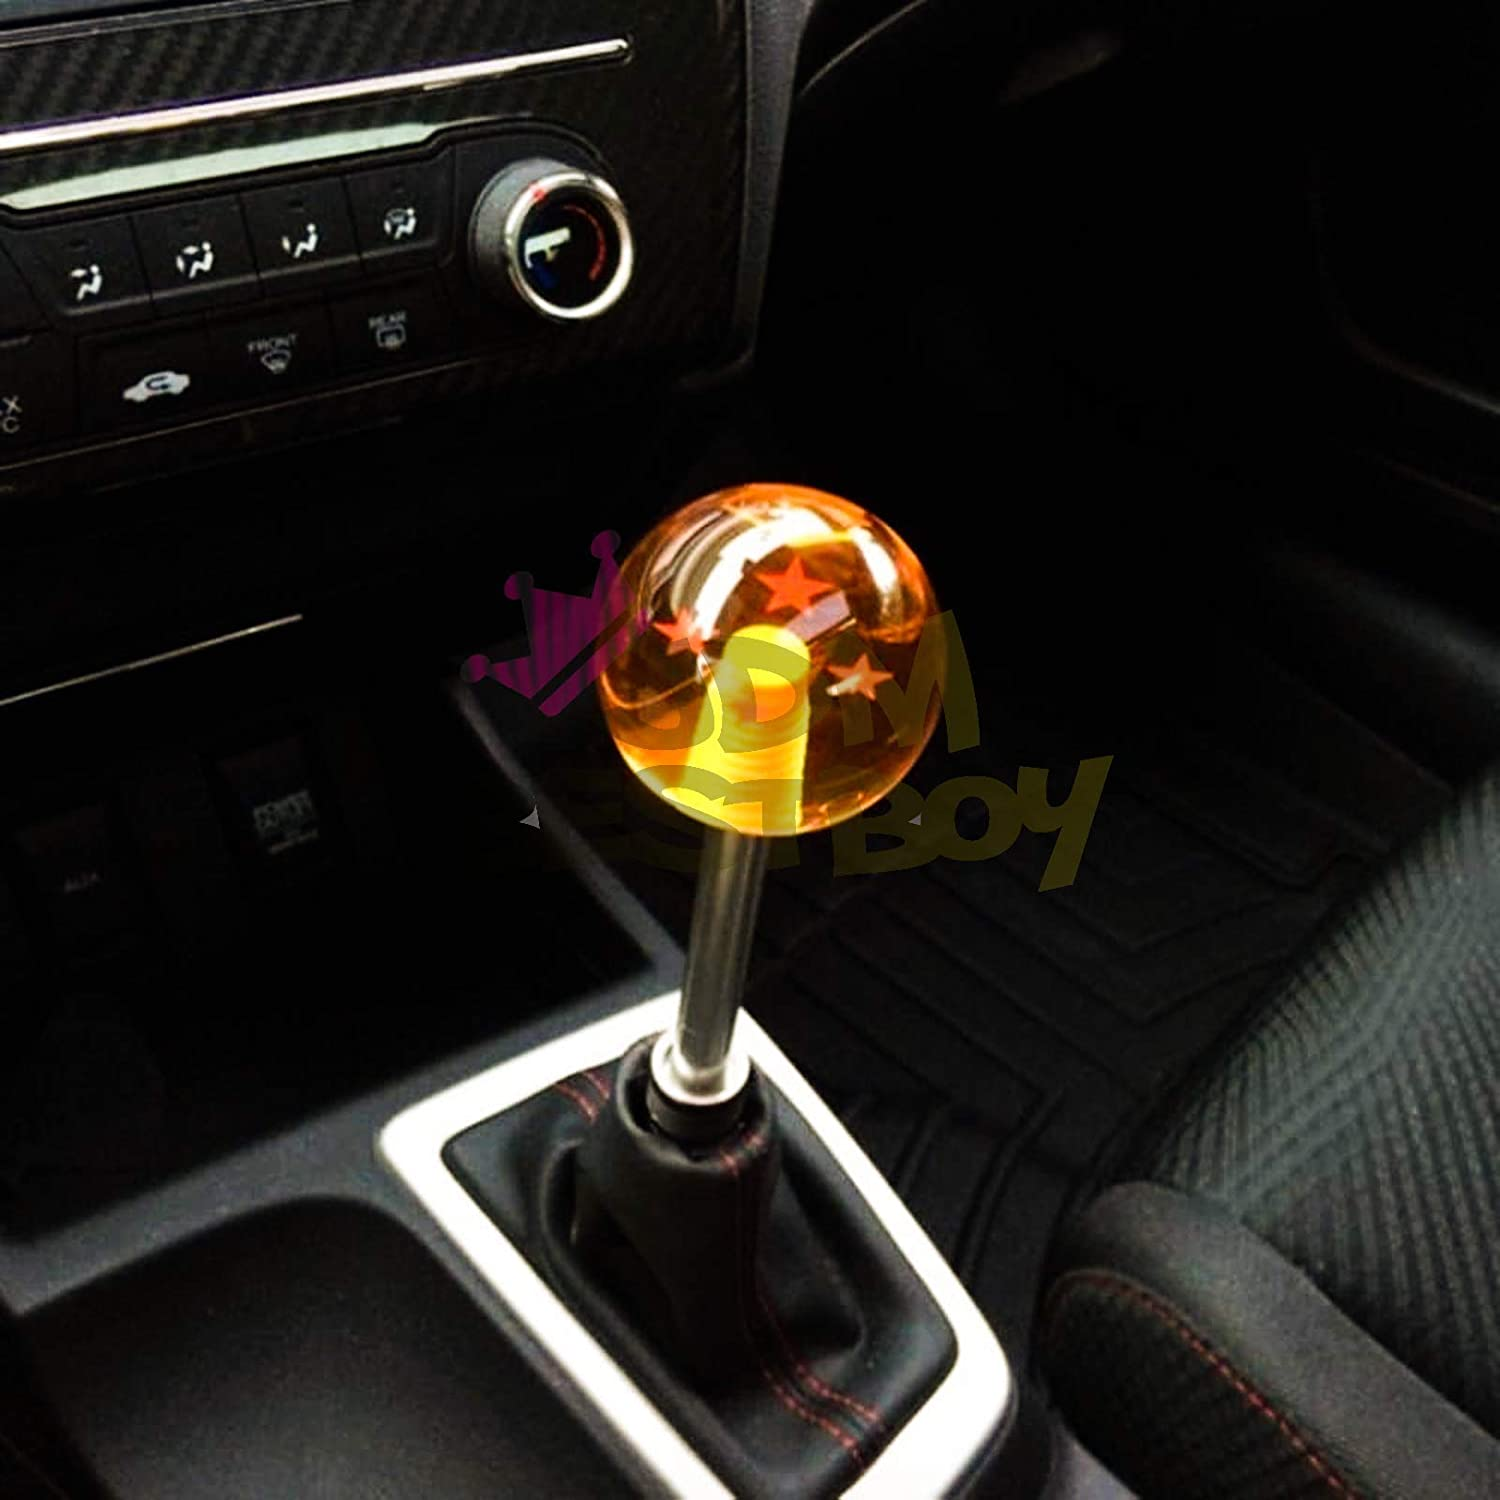 JDMBESTBOY Universal Blue Dragon Ball Z 5 Star 54mm Shift Knob with Adapters Will Fit Most Cars